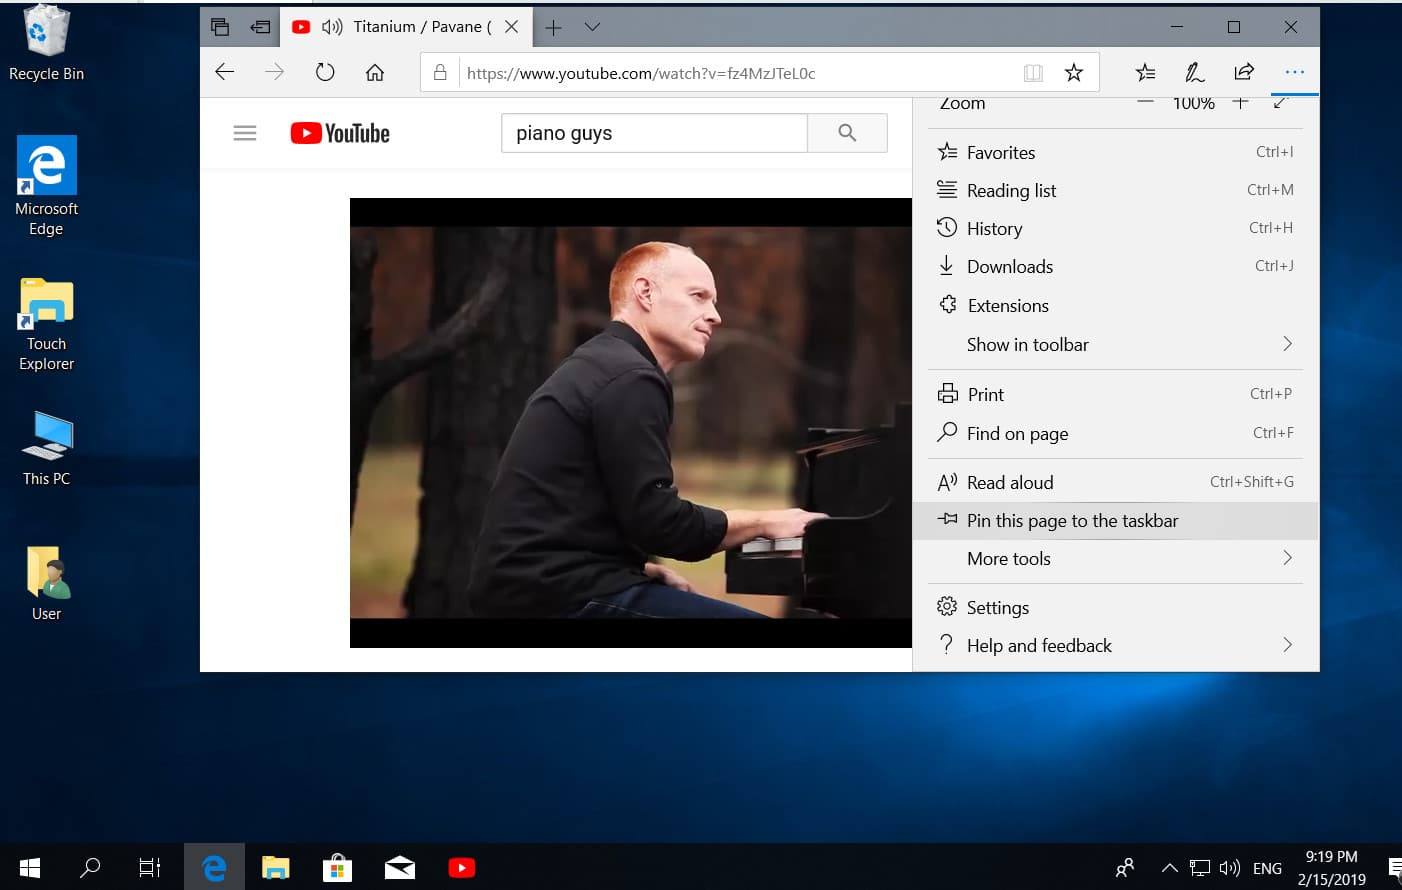 Pin the site to the taskbar or start menu in microsoft edge in Windows 10